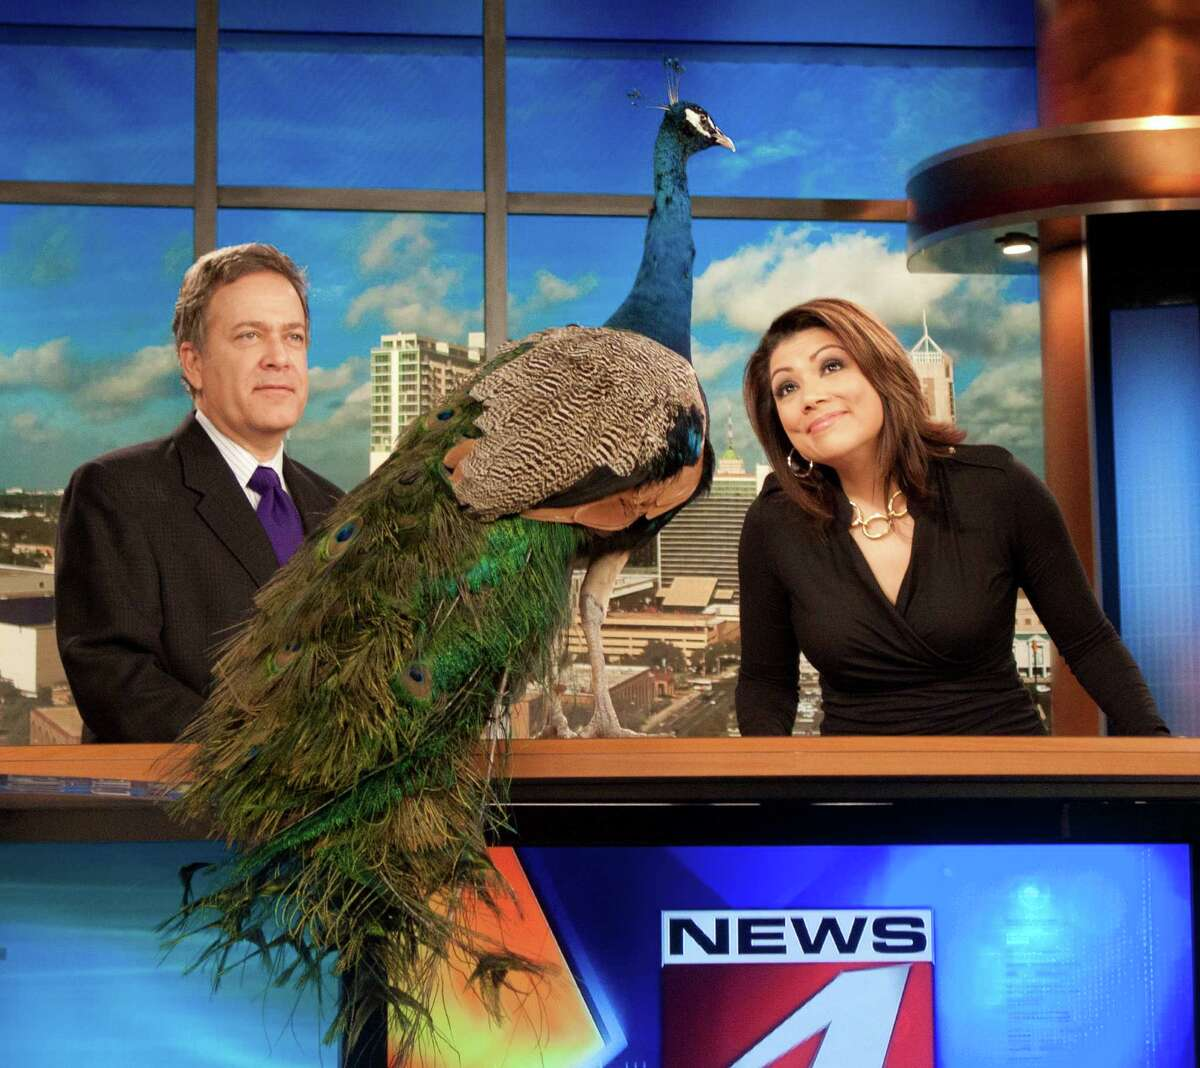 WOAI's fun-and-games news promos, such as the one that starred Randy Beamer, Elsa Ramon and an aggressive NBC peacock, are being replaced by a more serious approach.